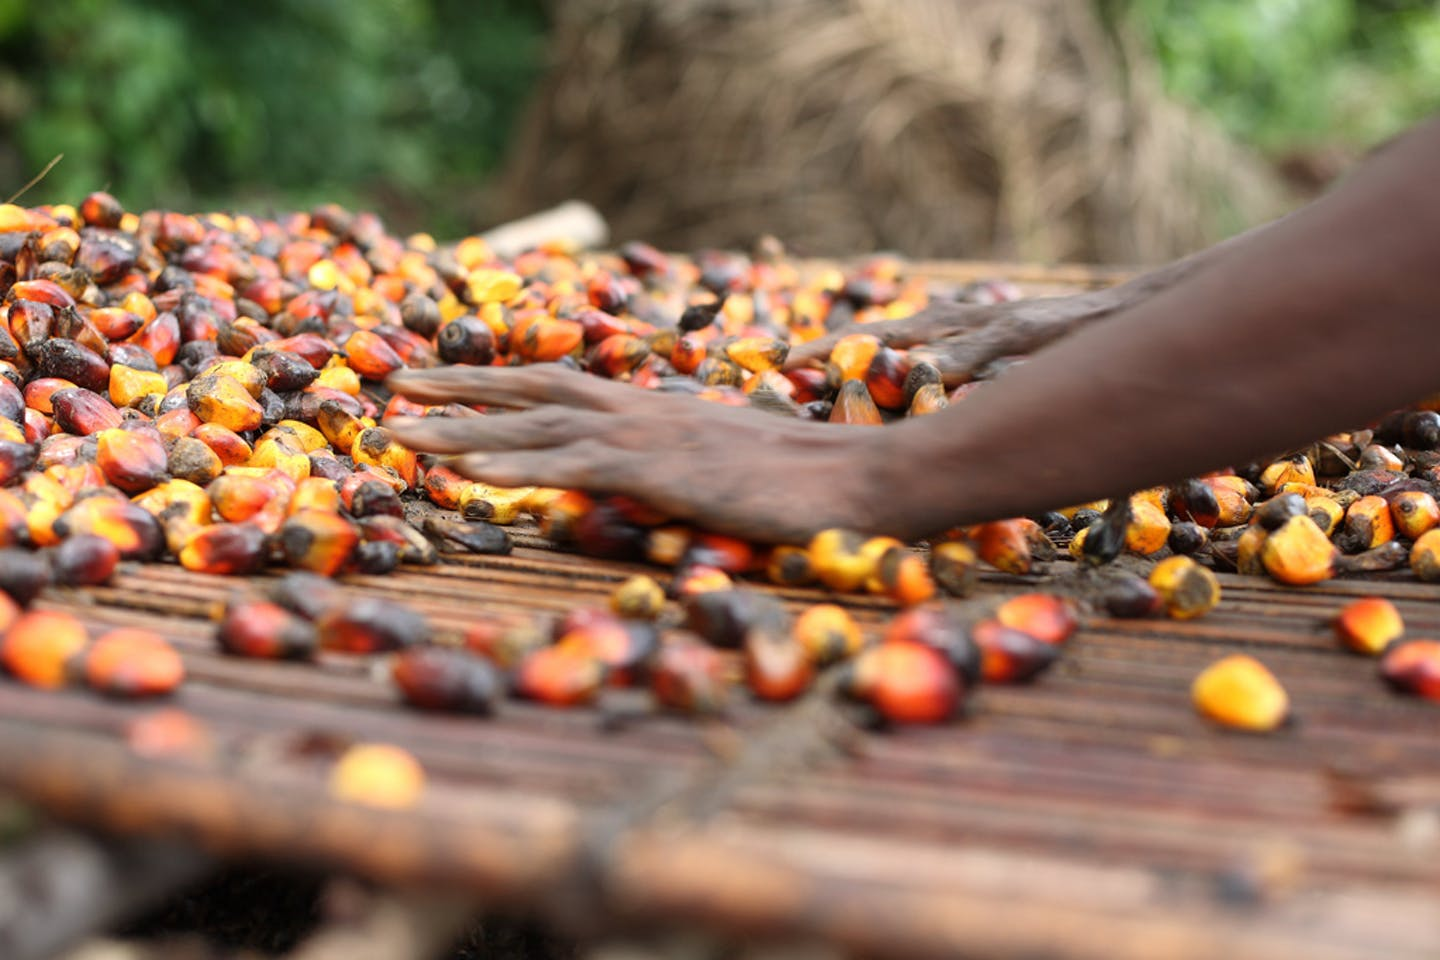 A farmer sorts his palm oil fruit